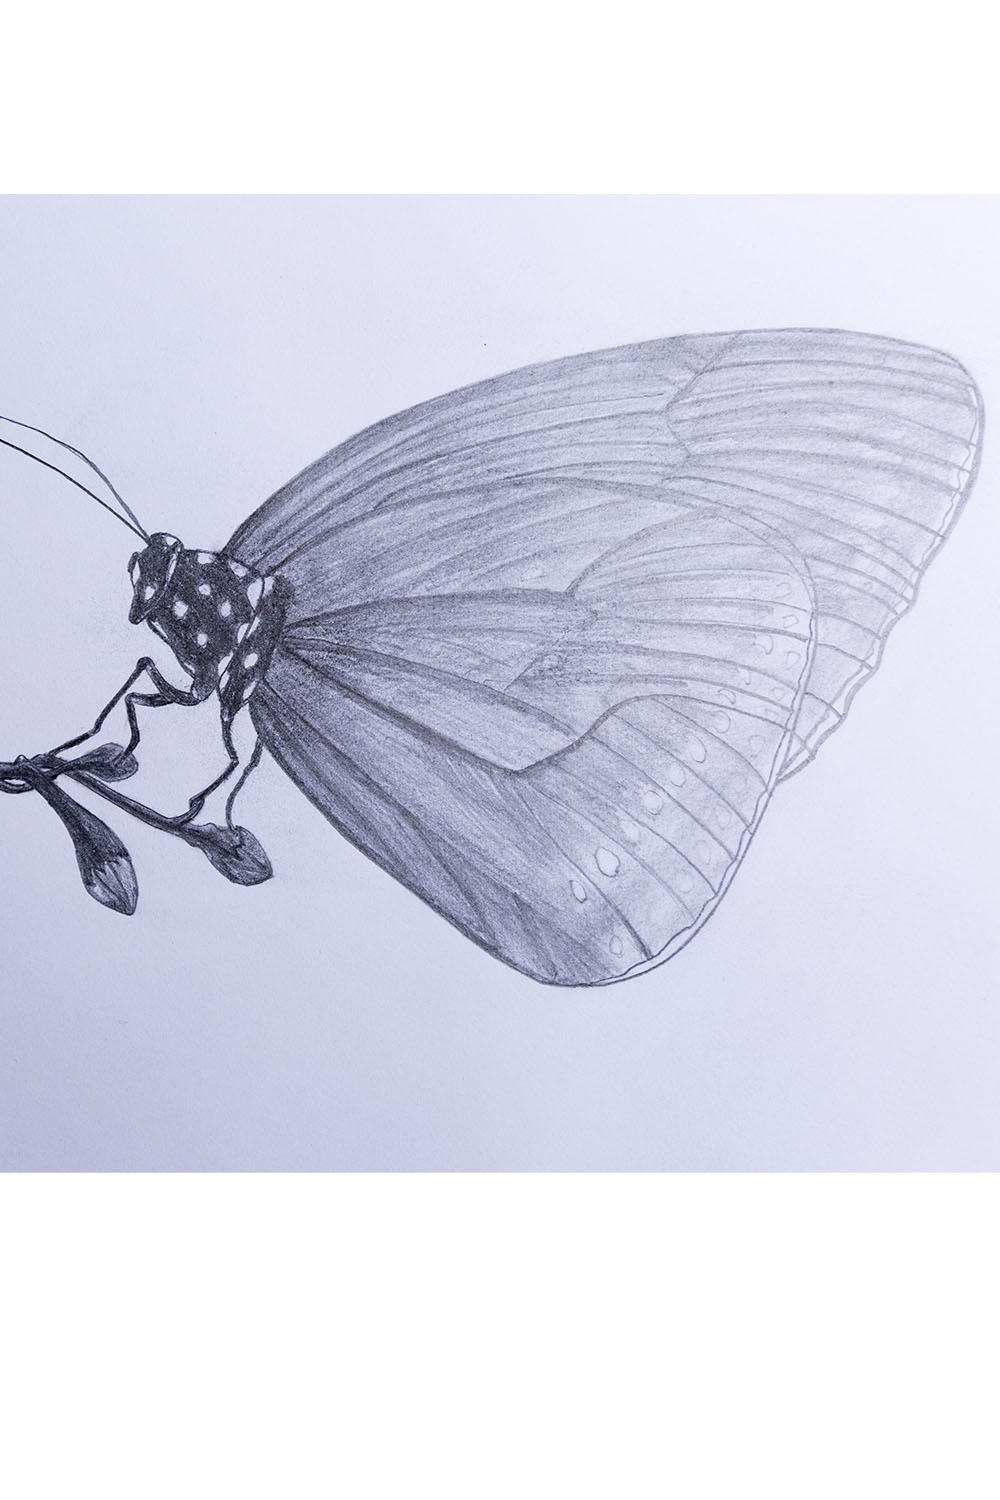 how to draw a butterfly step by step